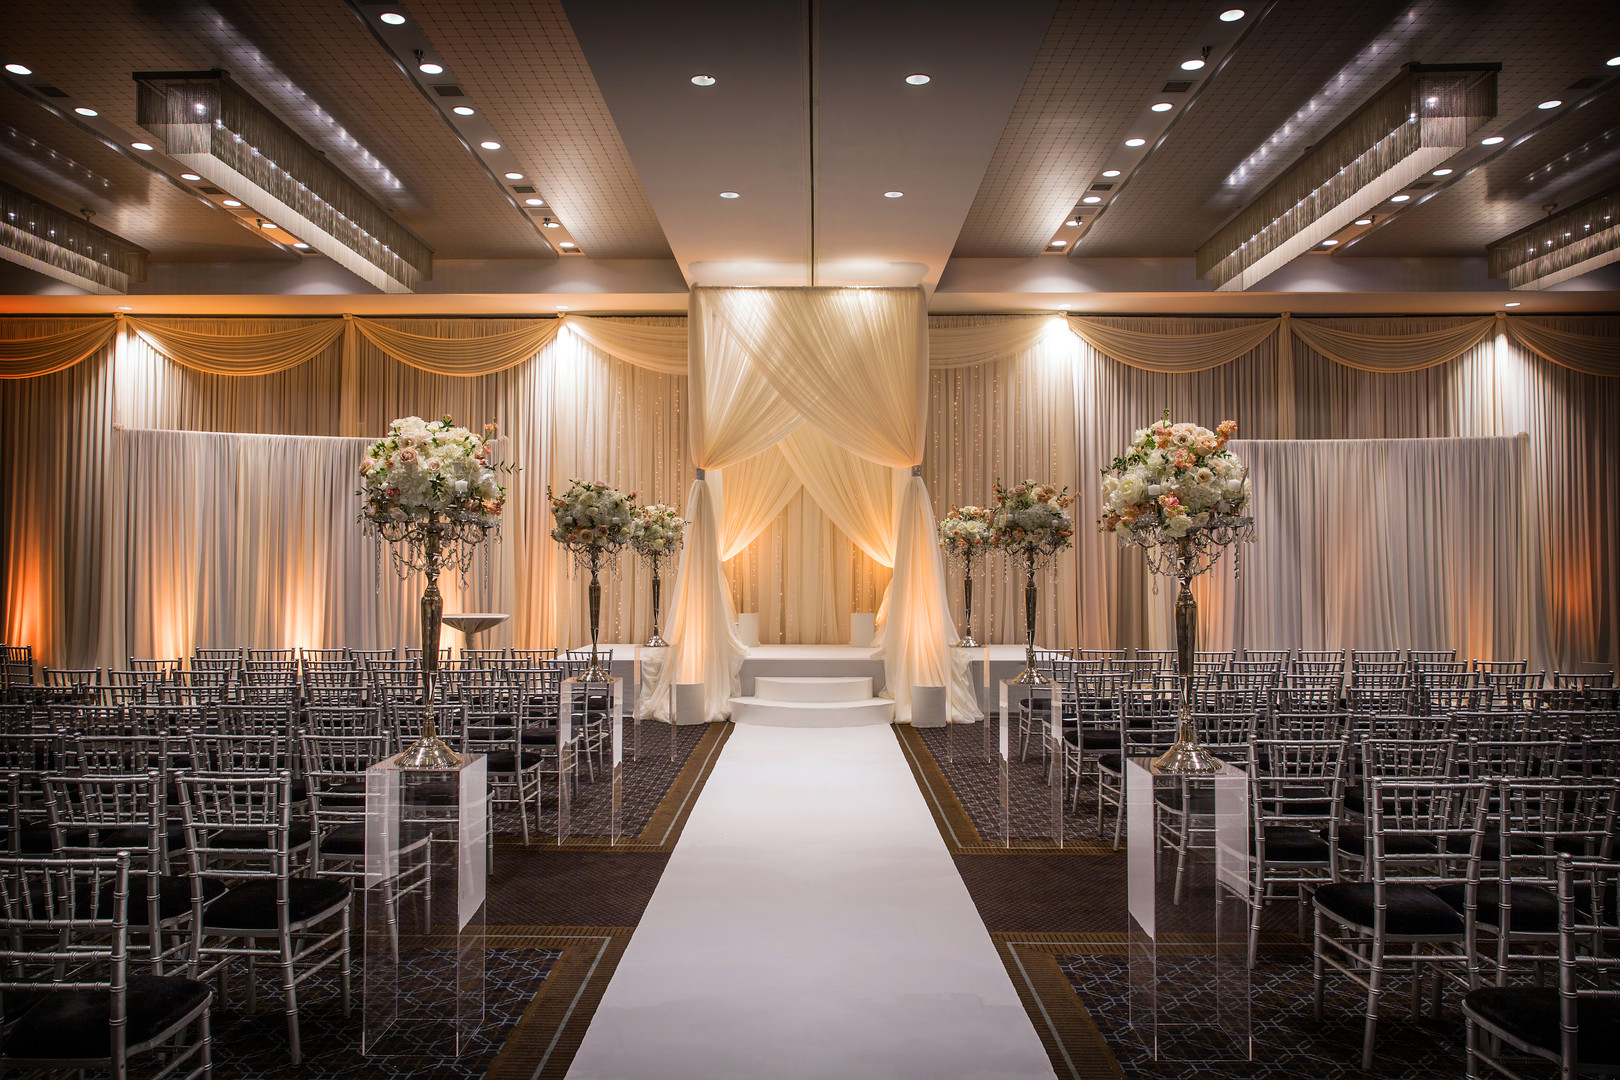 Luxurious winter wedding at Hotel Arista in Naperville, IL captured by Jason Kaczorowski Photography. See more winter wedding ideas at CHItheeWED.com!